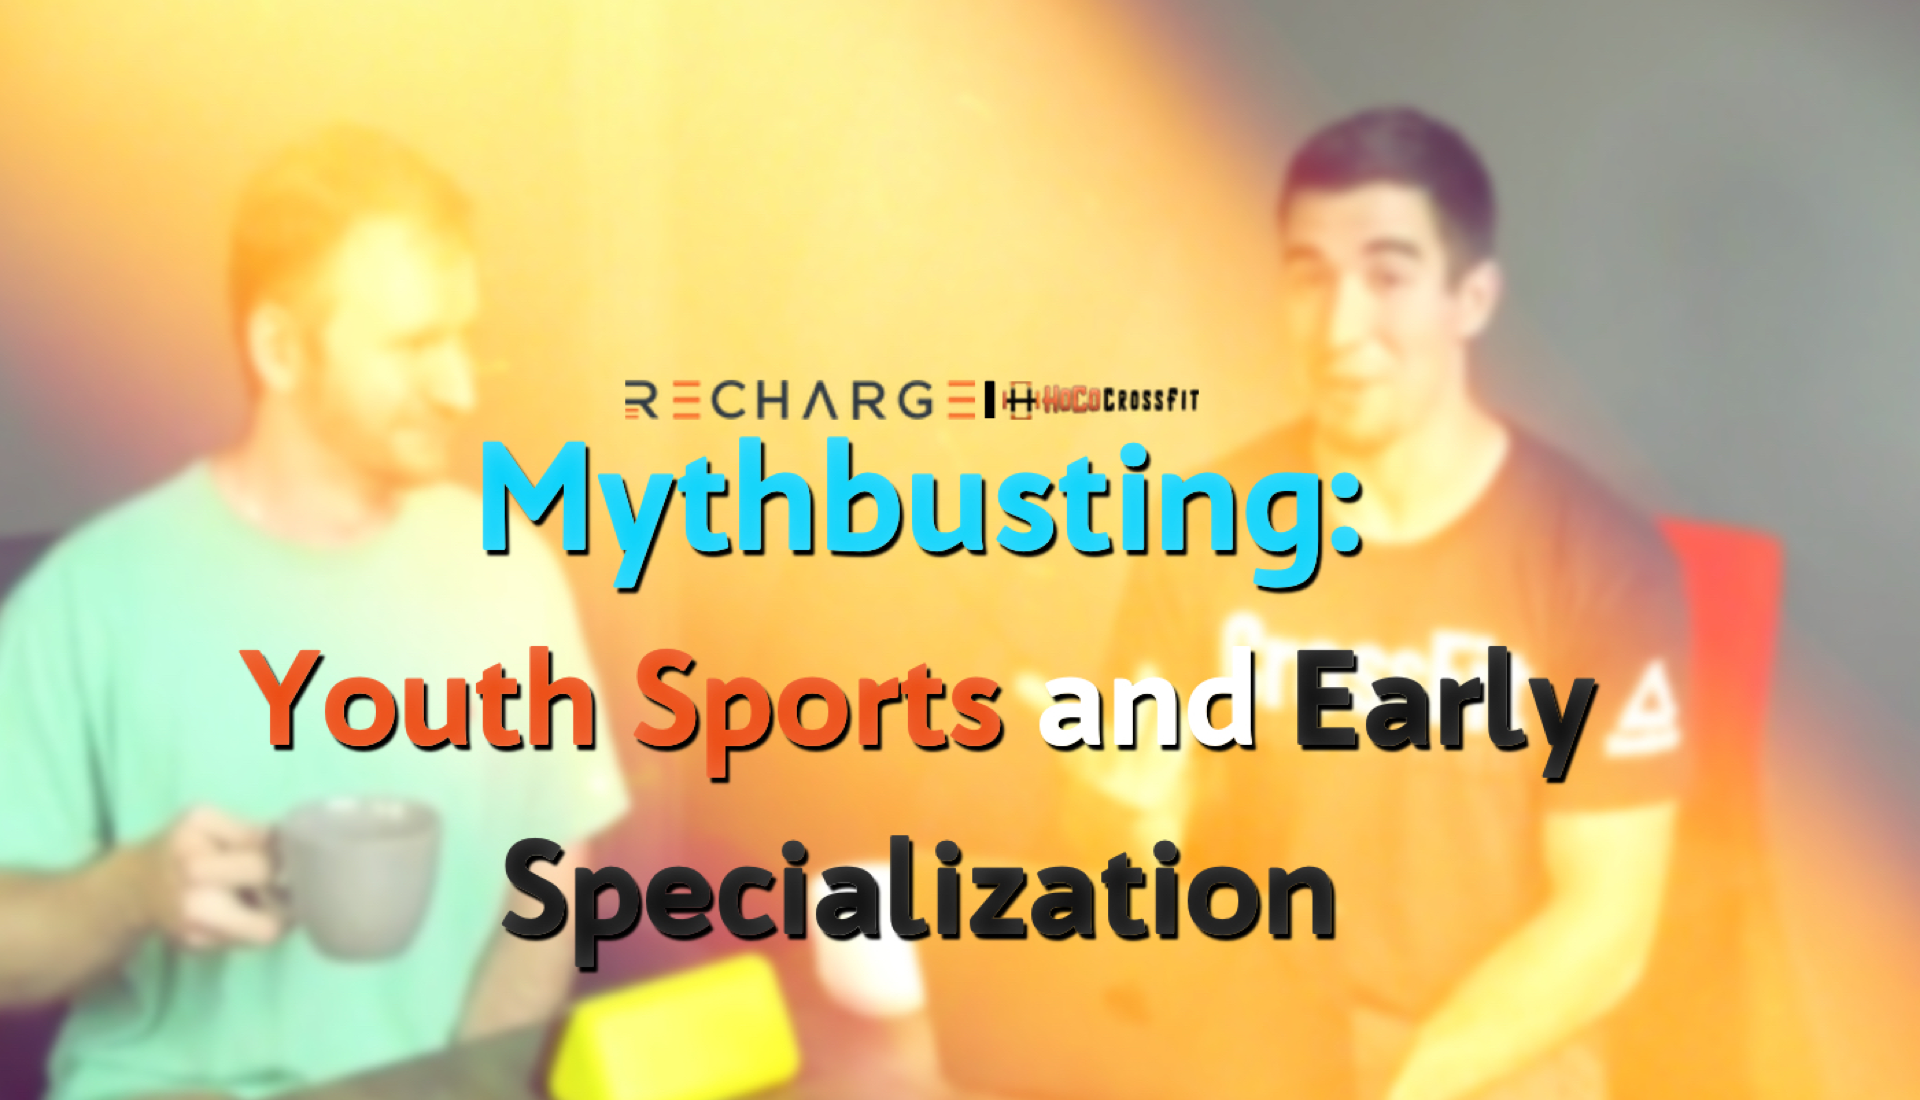 Dr. Gene Shirokobrod and Dr. Ryan Smith break down most common youth sports myths live from Recharge|HoCo CrossFit in ellicott city